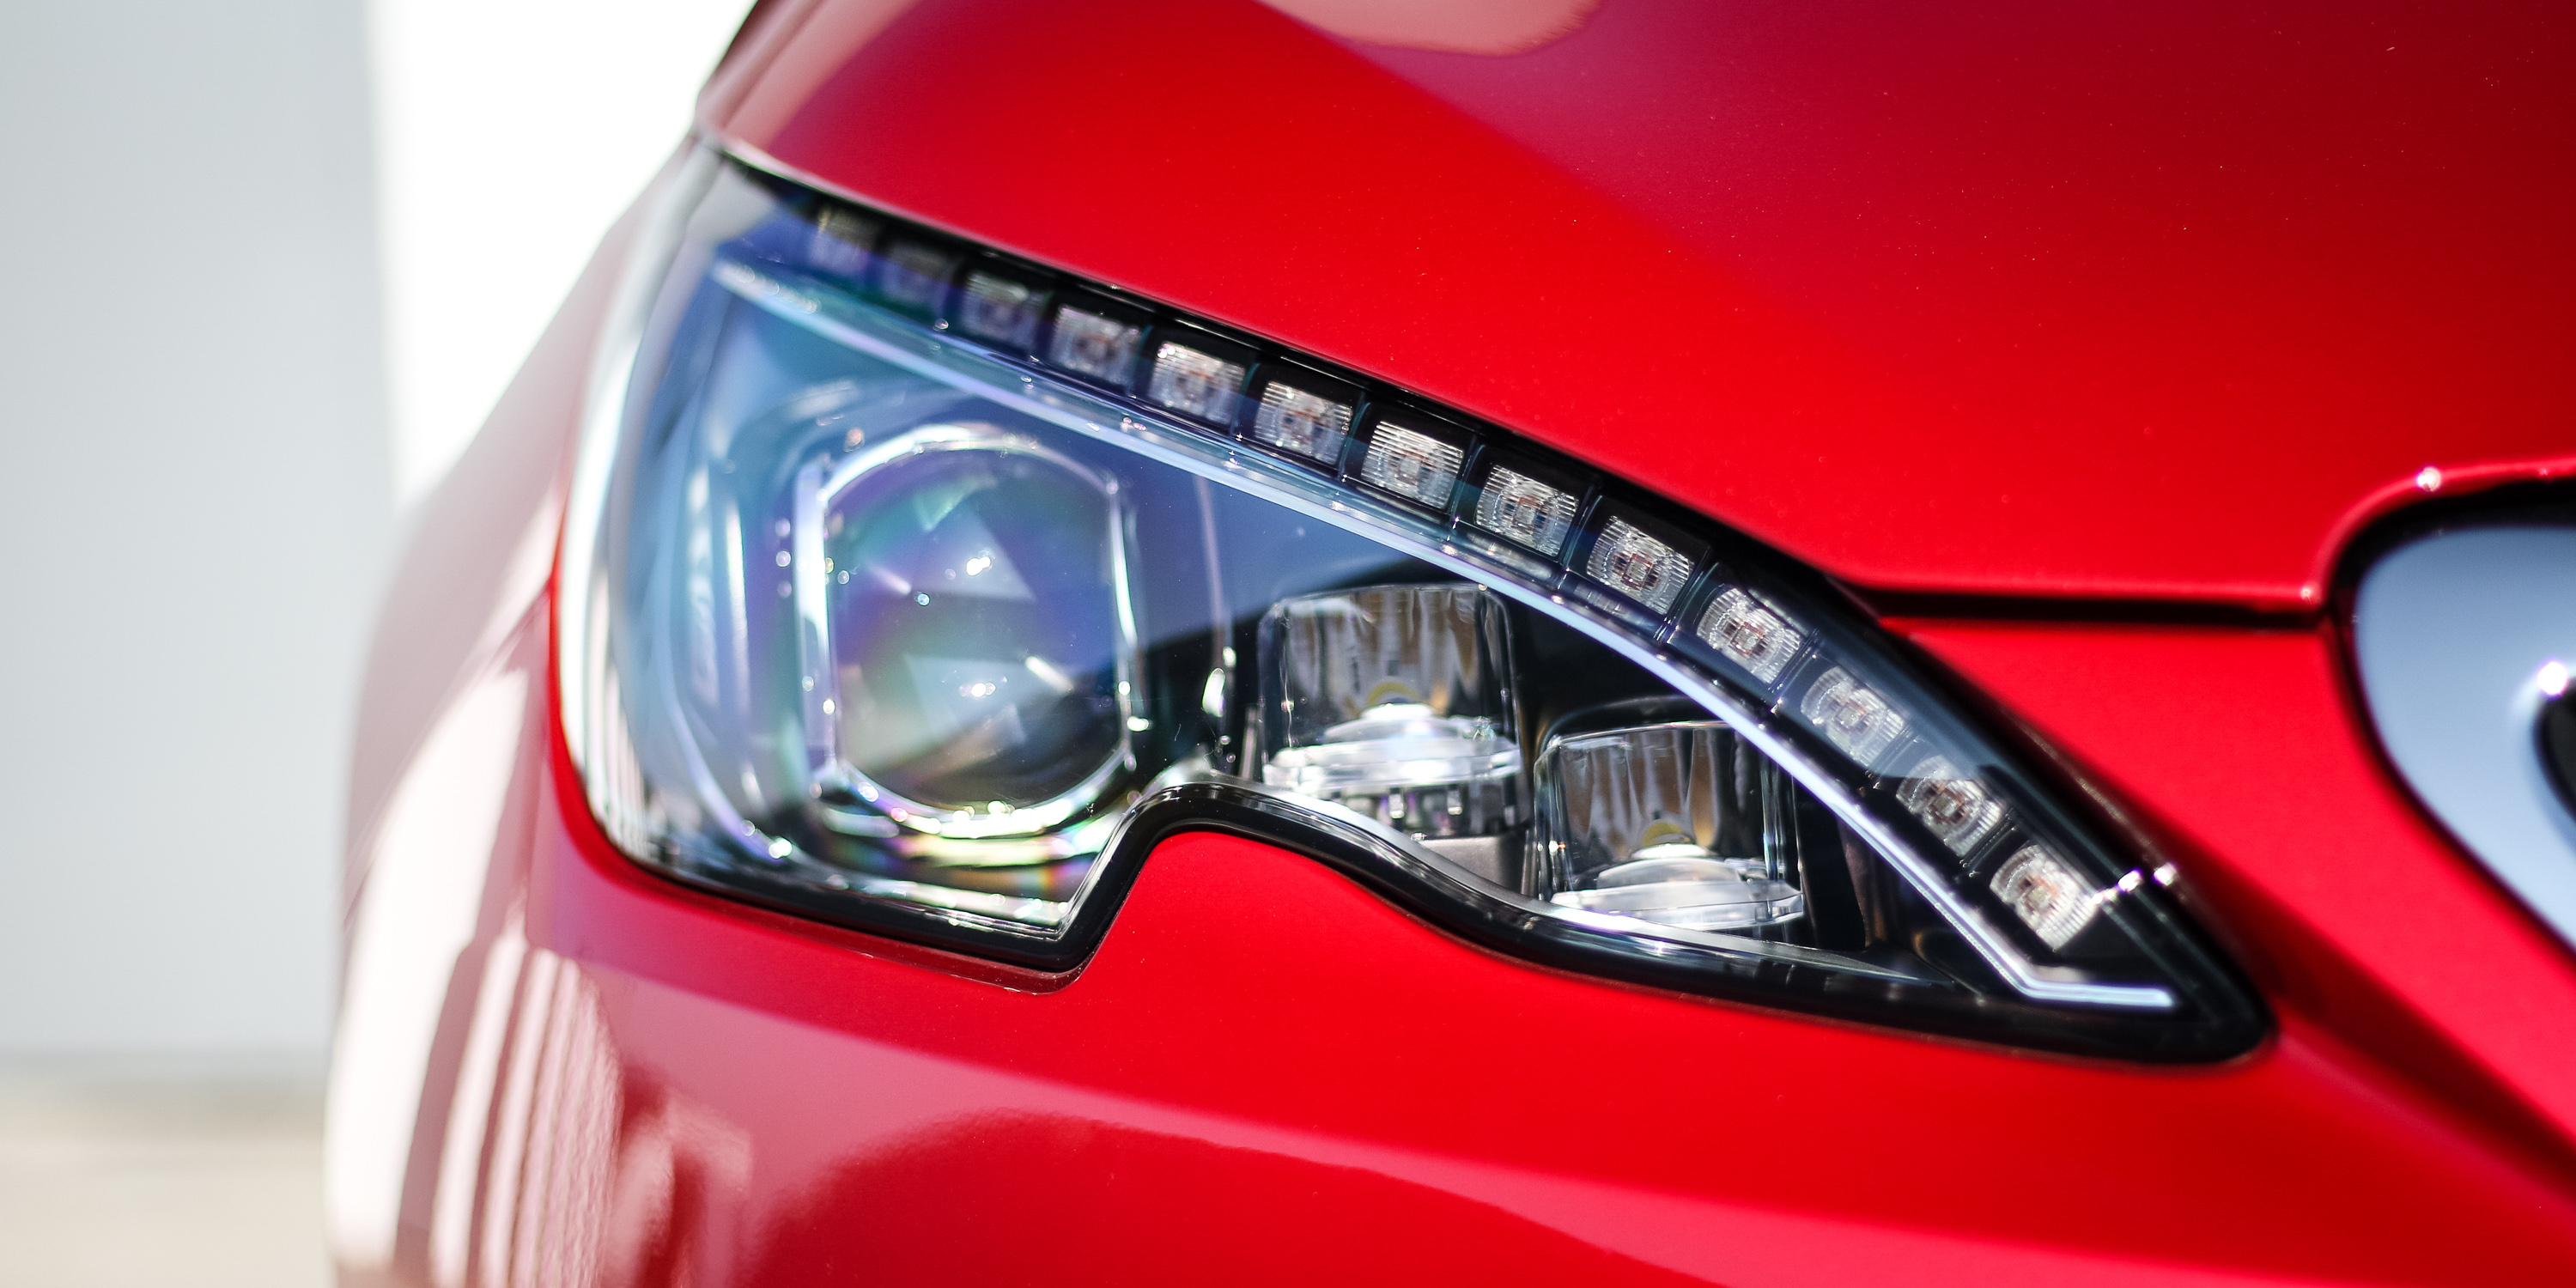 2016 Peugeot 308 Gti Headlamp (Photo 8 of 15)